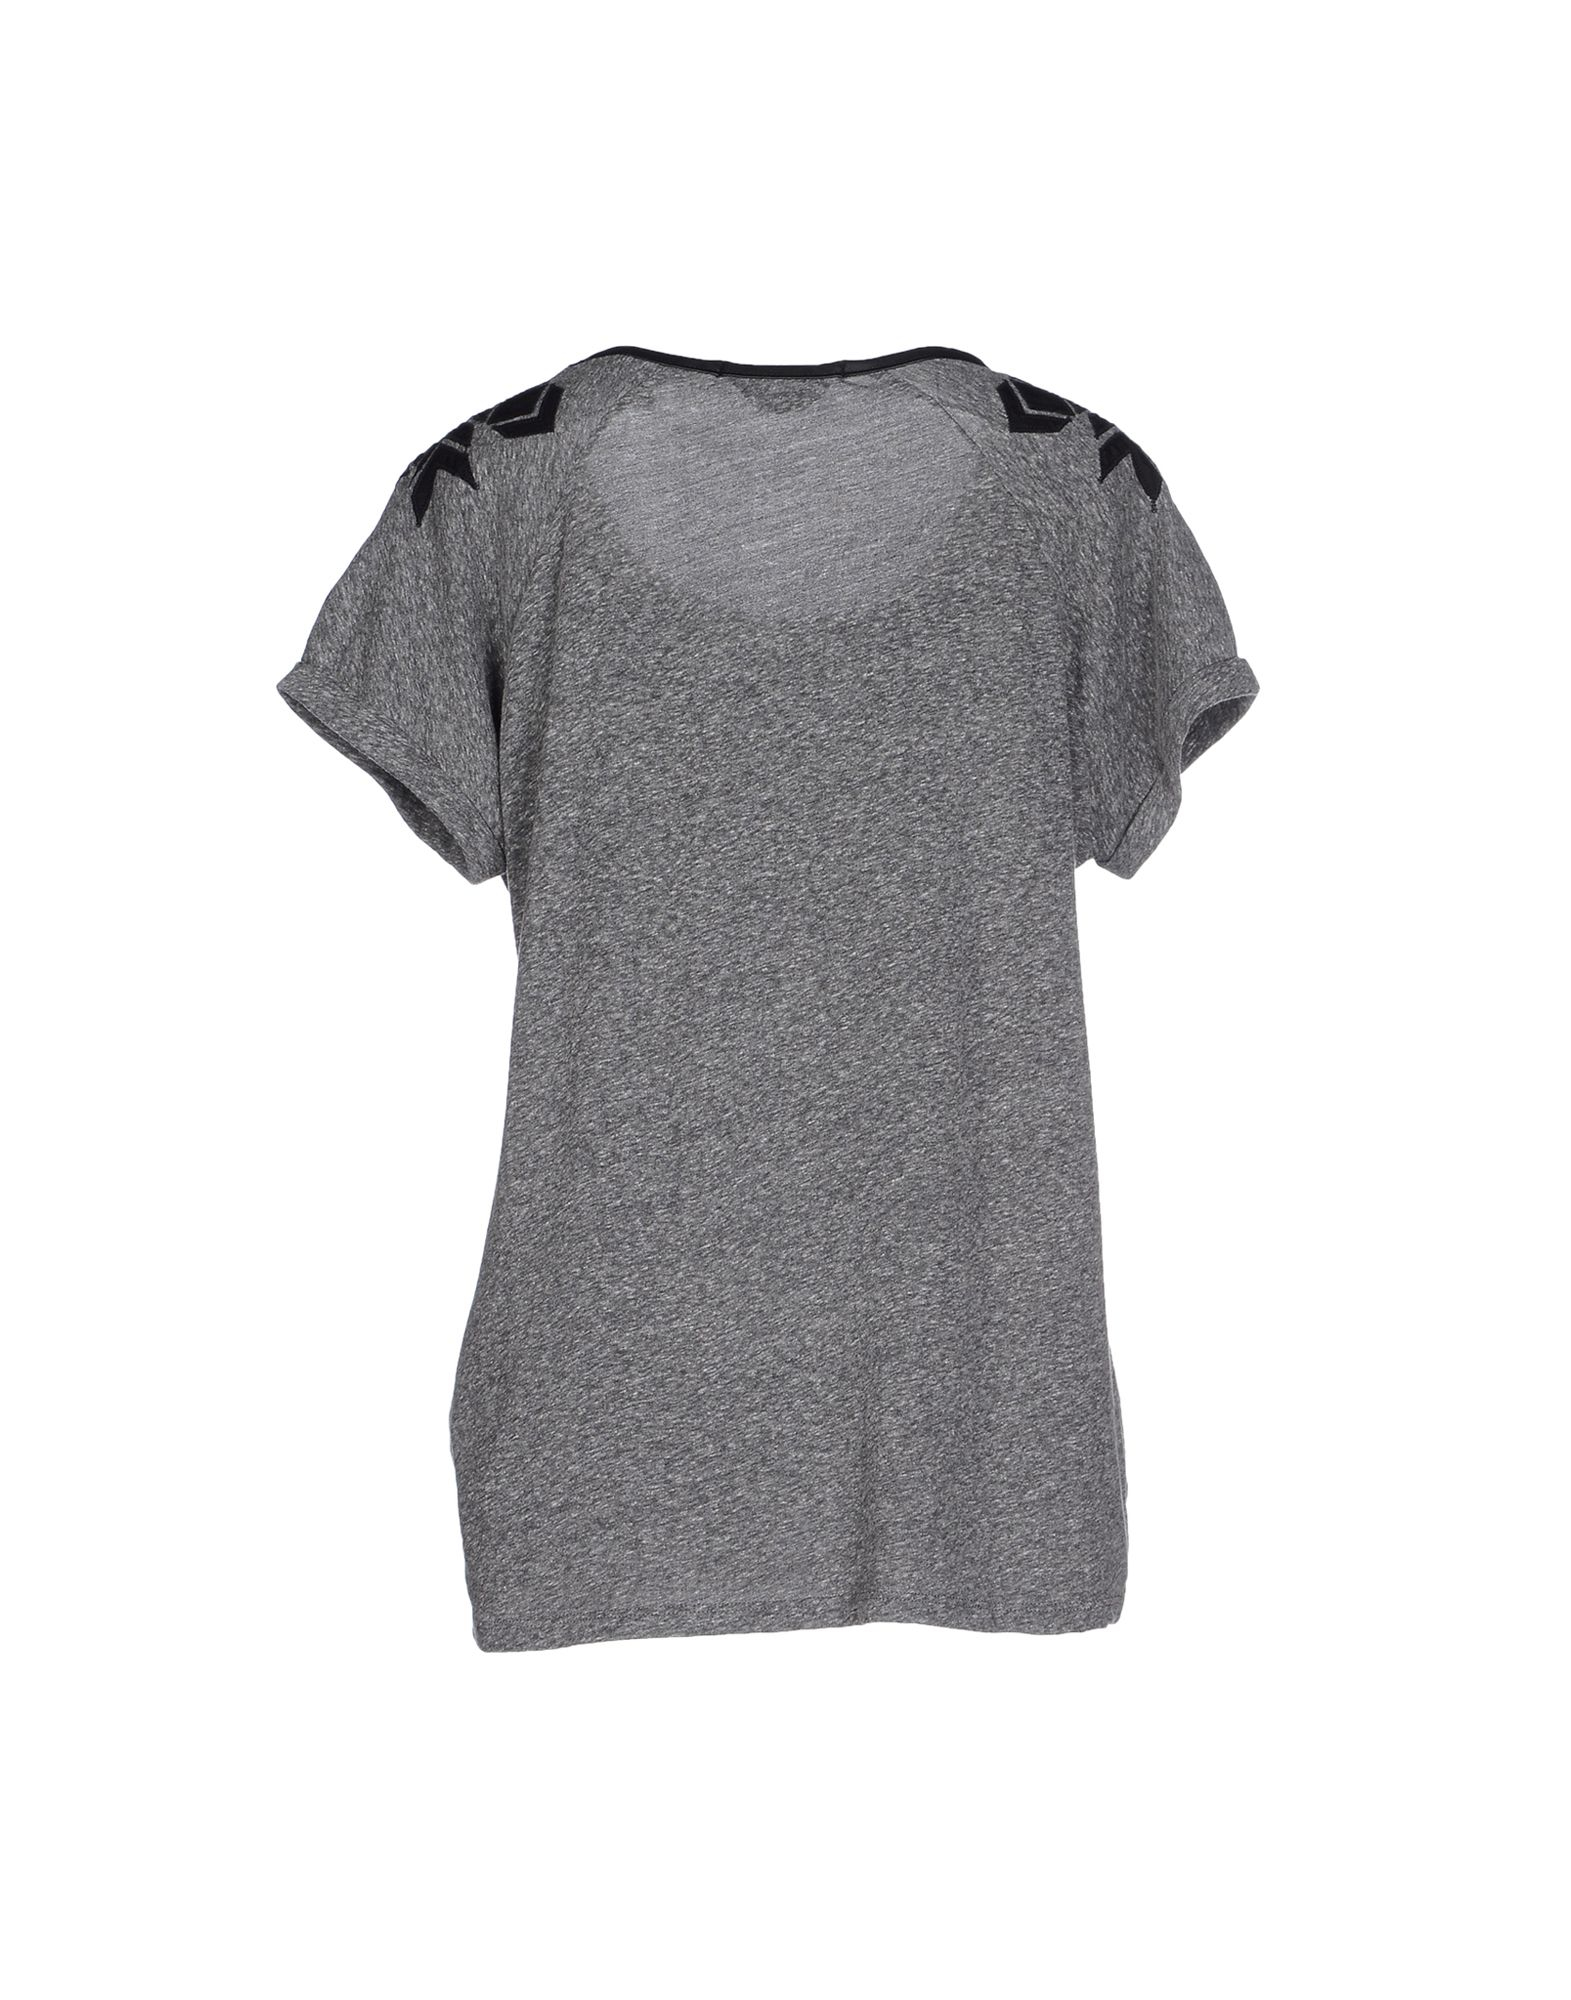 Lyst maison scotch t shirt in gray for About maison scotch